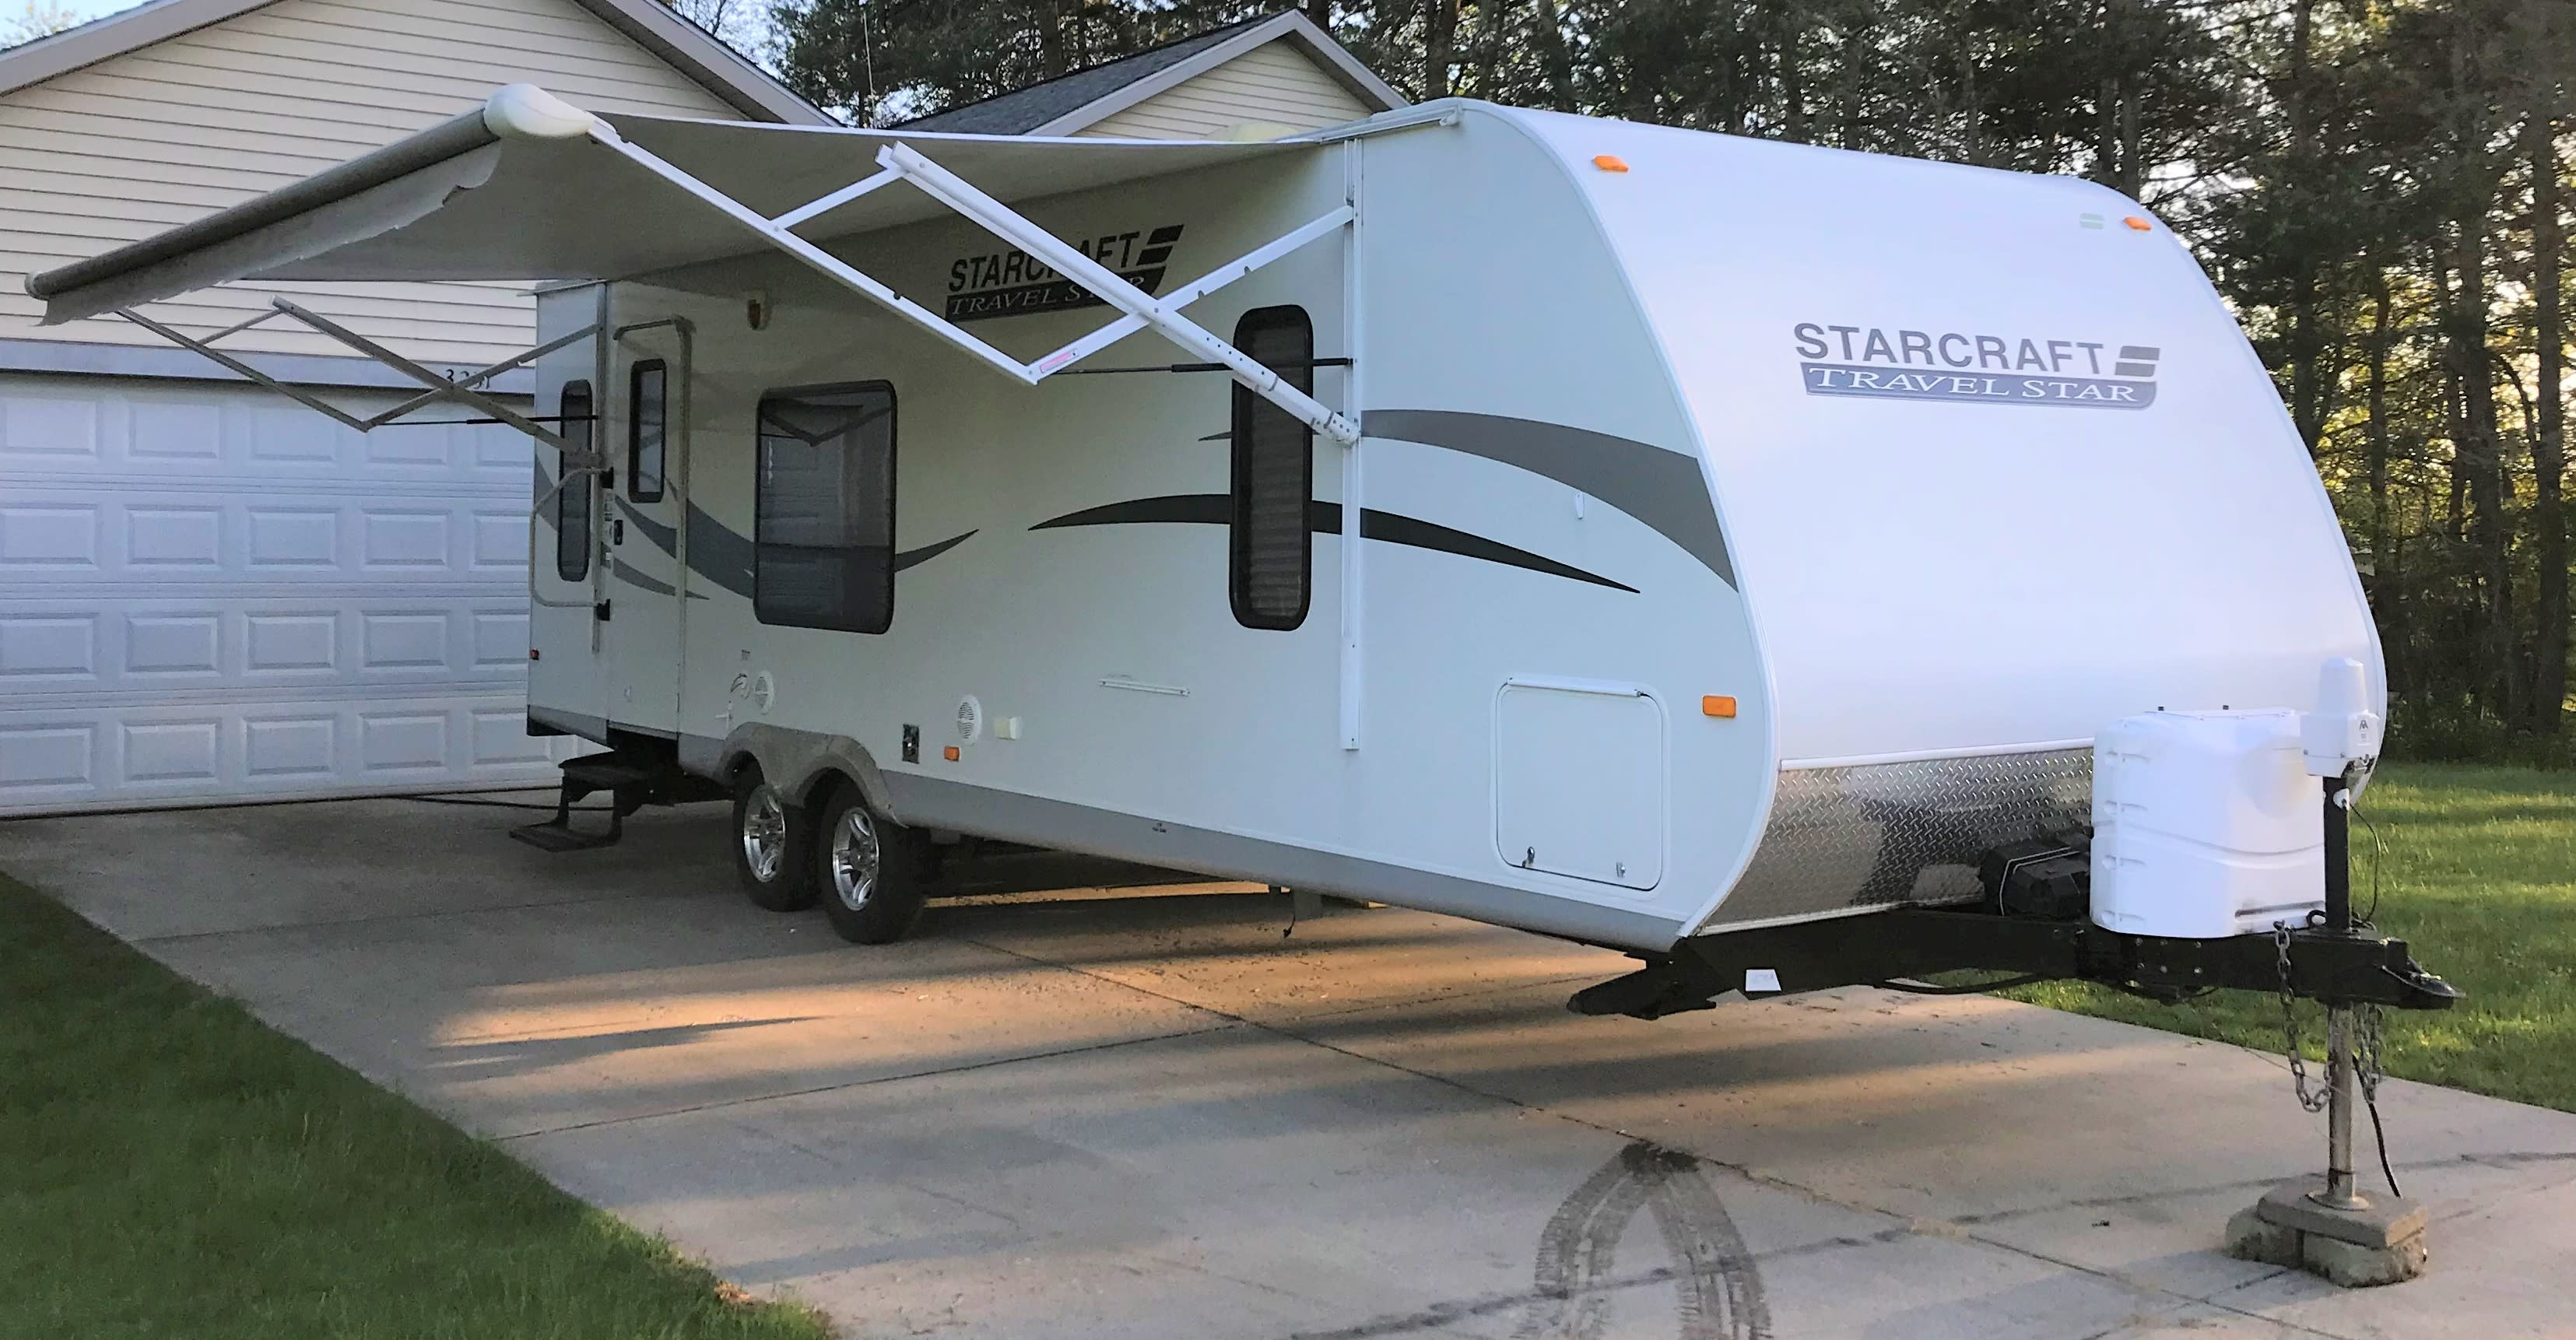 Power awning to provide shade and protection form the elements. Starcraft Travel Star 2011